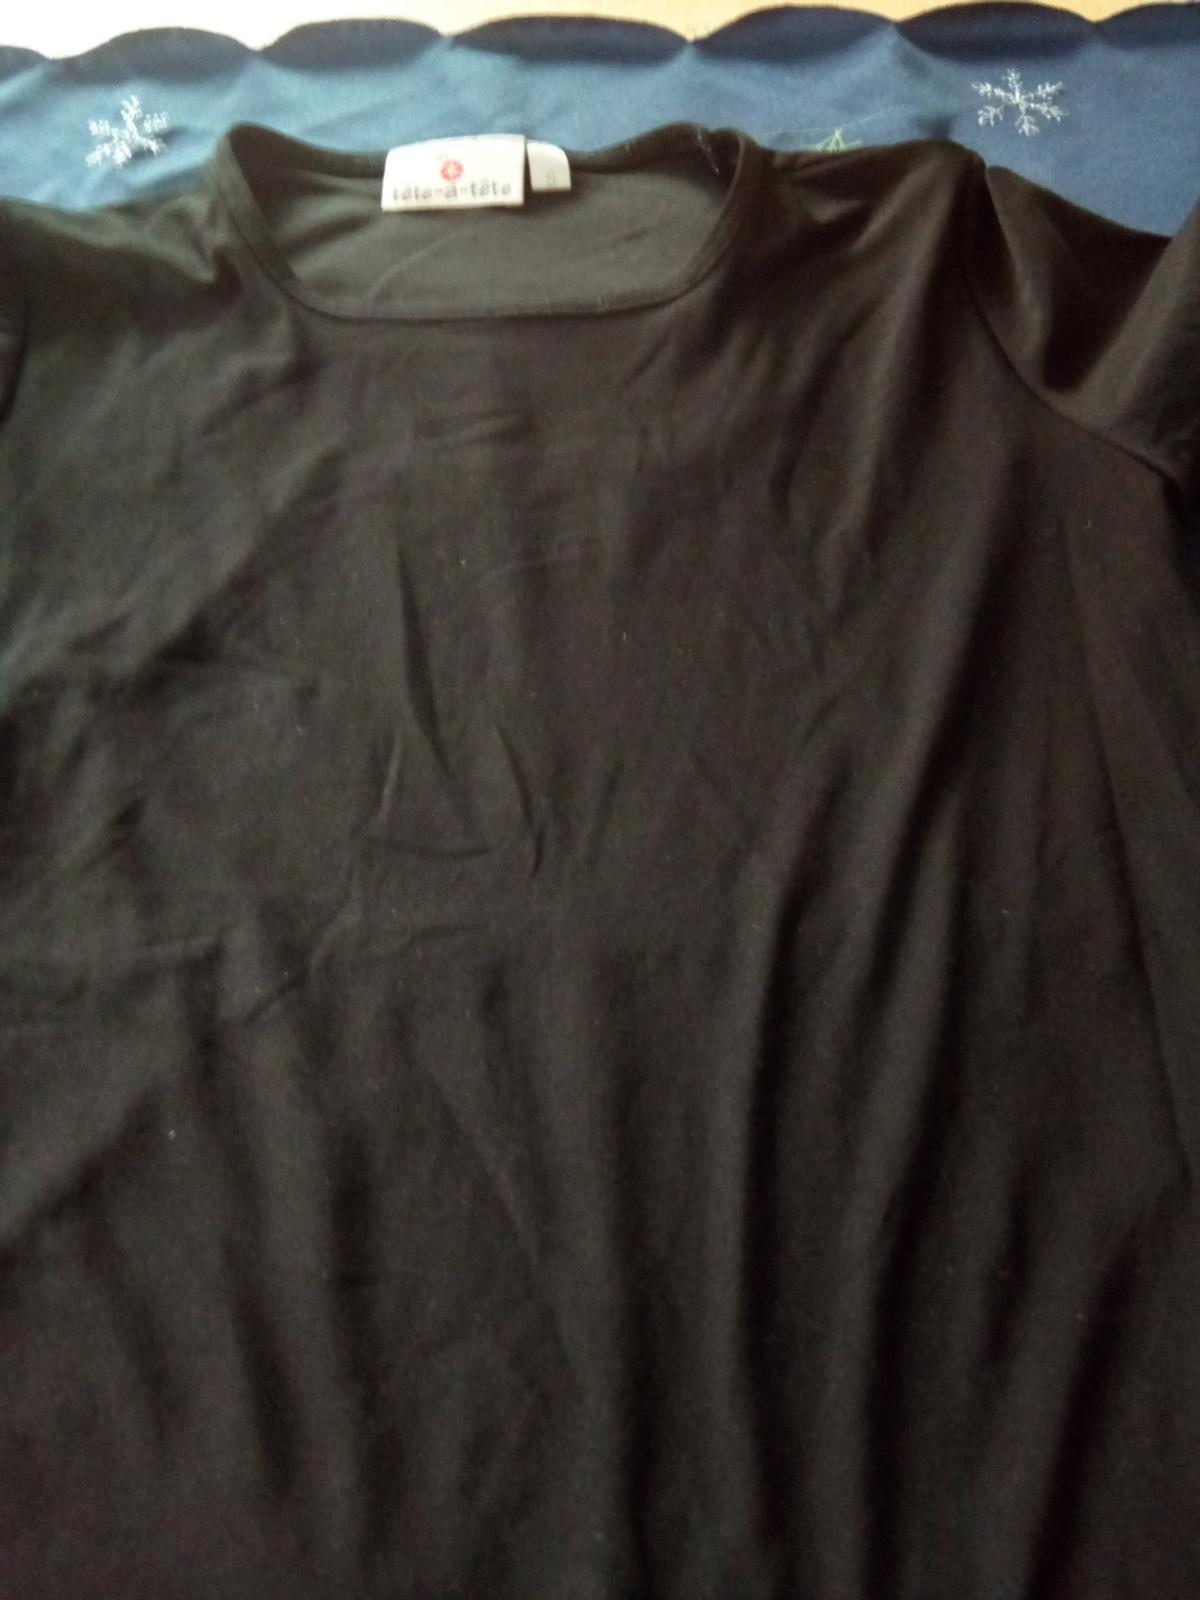 f94e1c71986bea DAMEN STRETCH T- SHIRT in 6600 Pflach for €1.00 for sale - Shpock